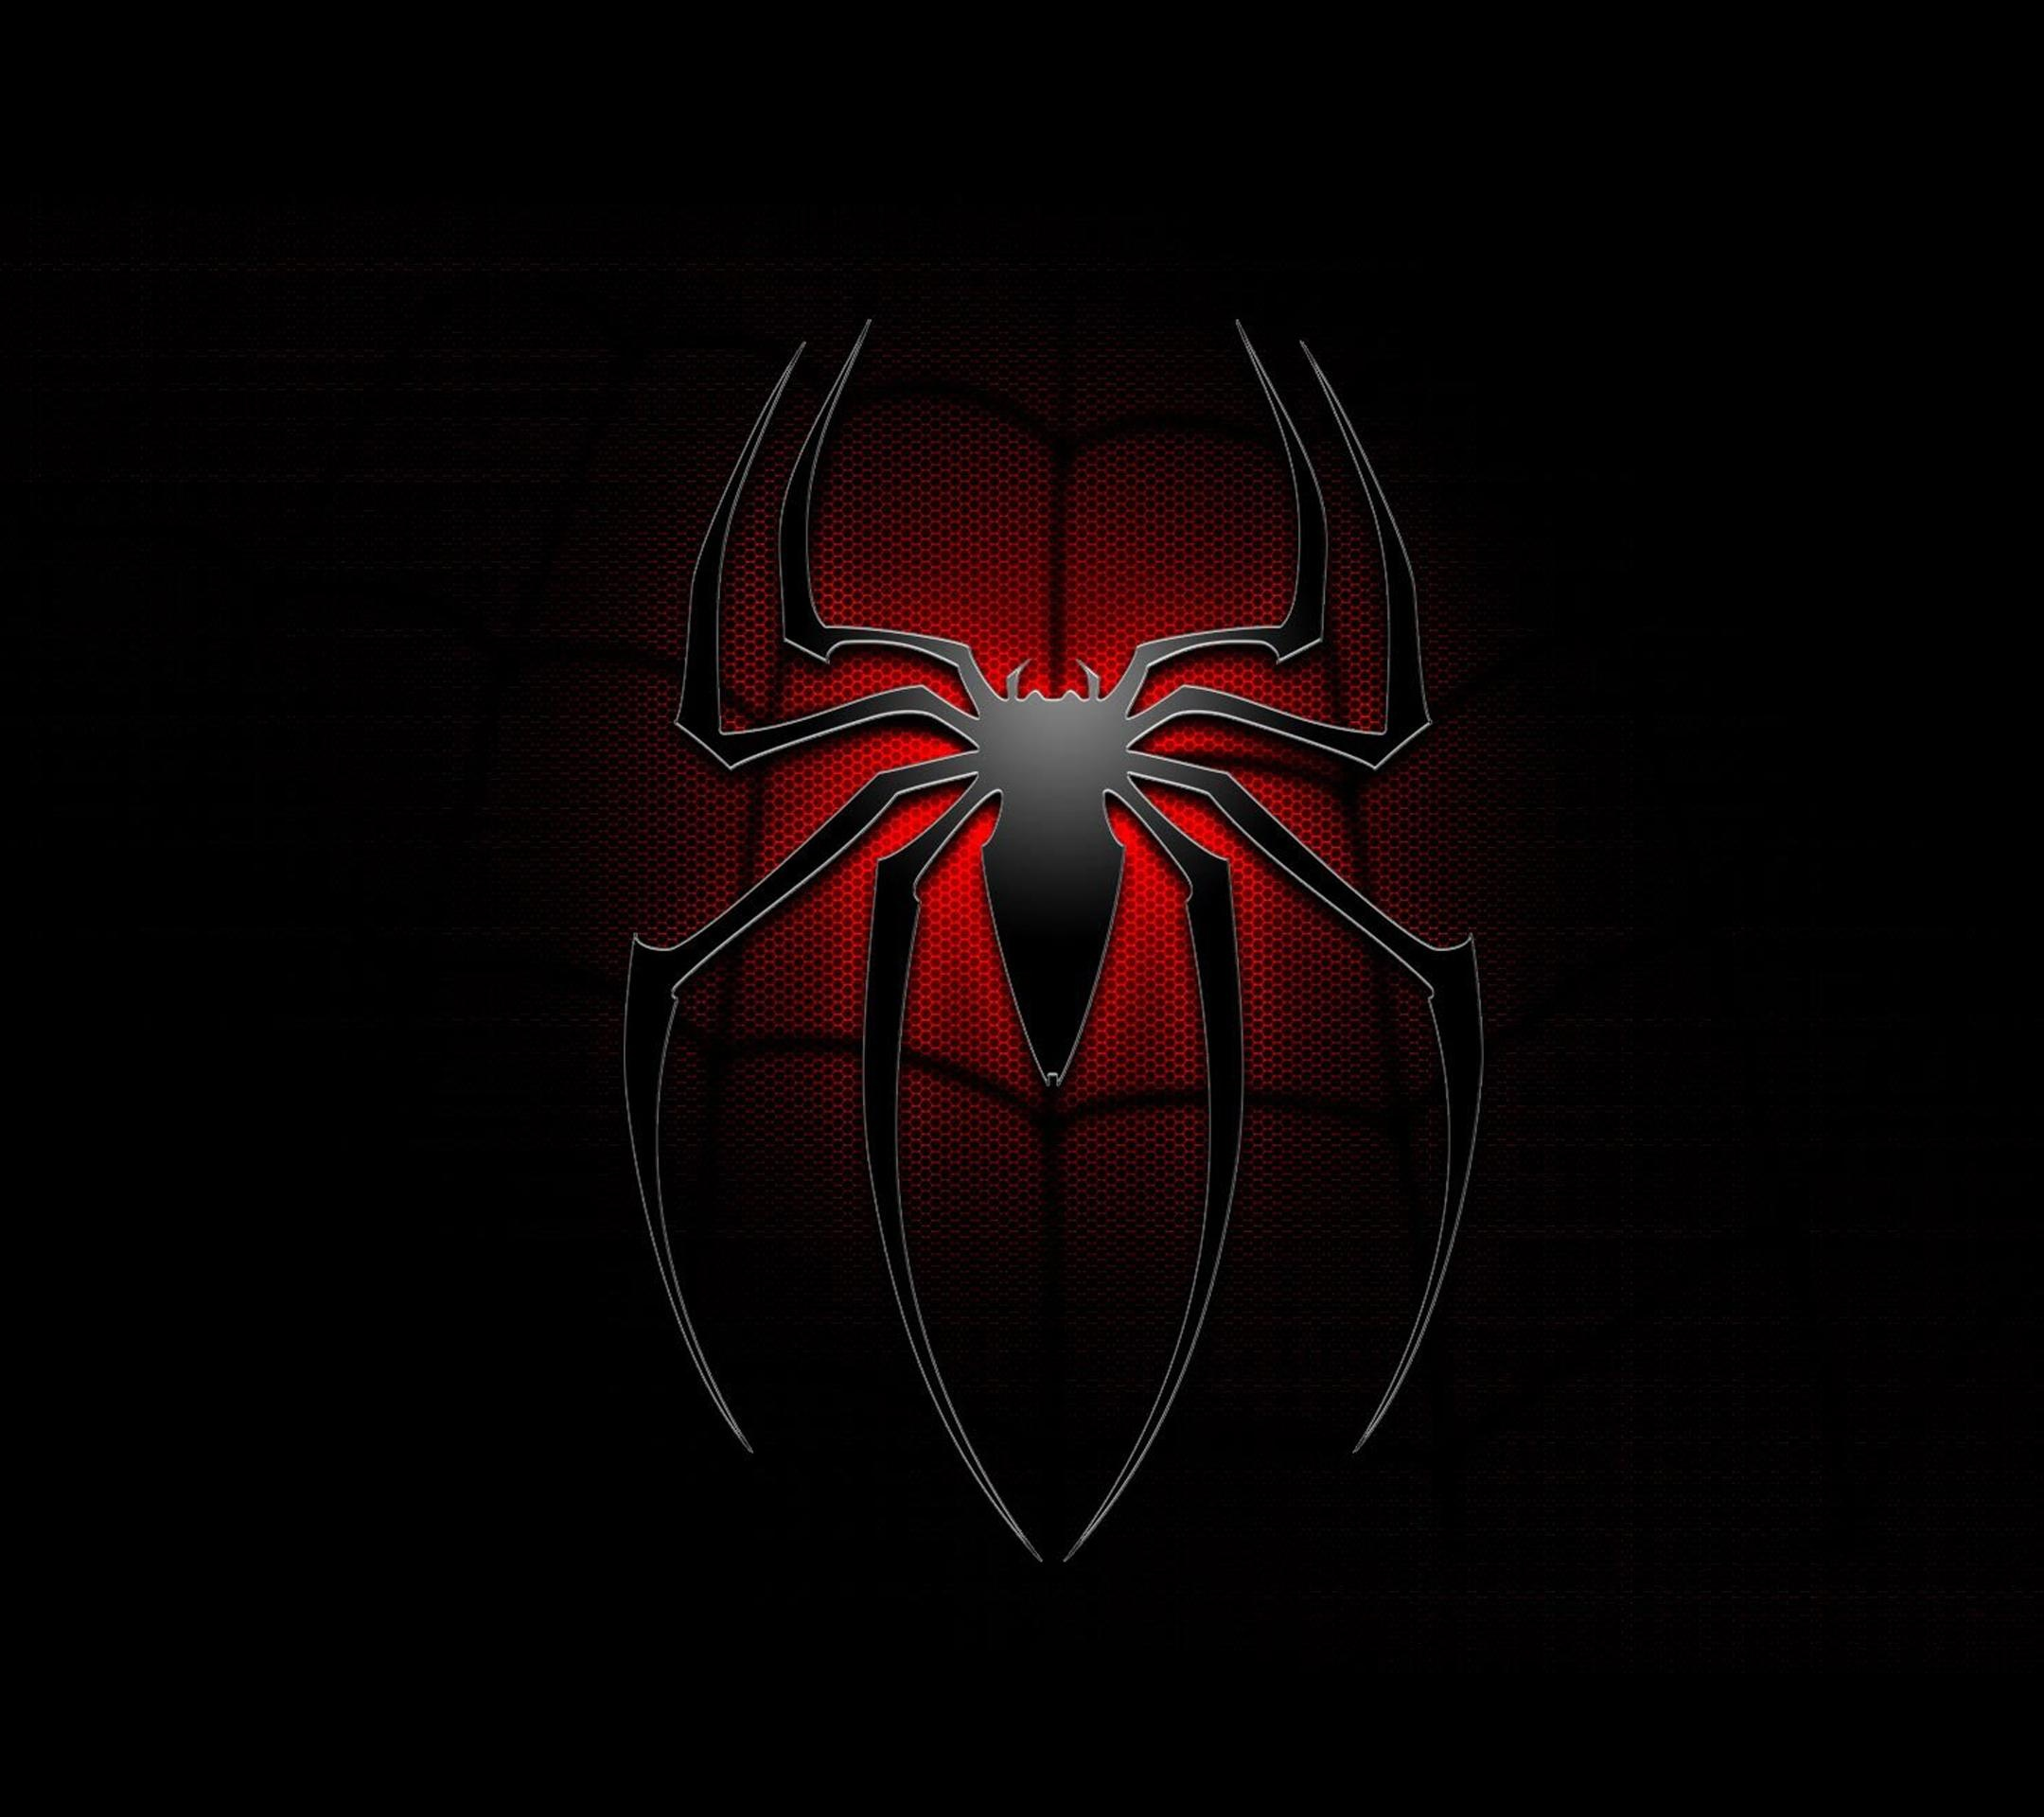 Zedge Full Hd Wallpaper Spiderman Wallpaper 2160x1920 1082836 Wallpaperup